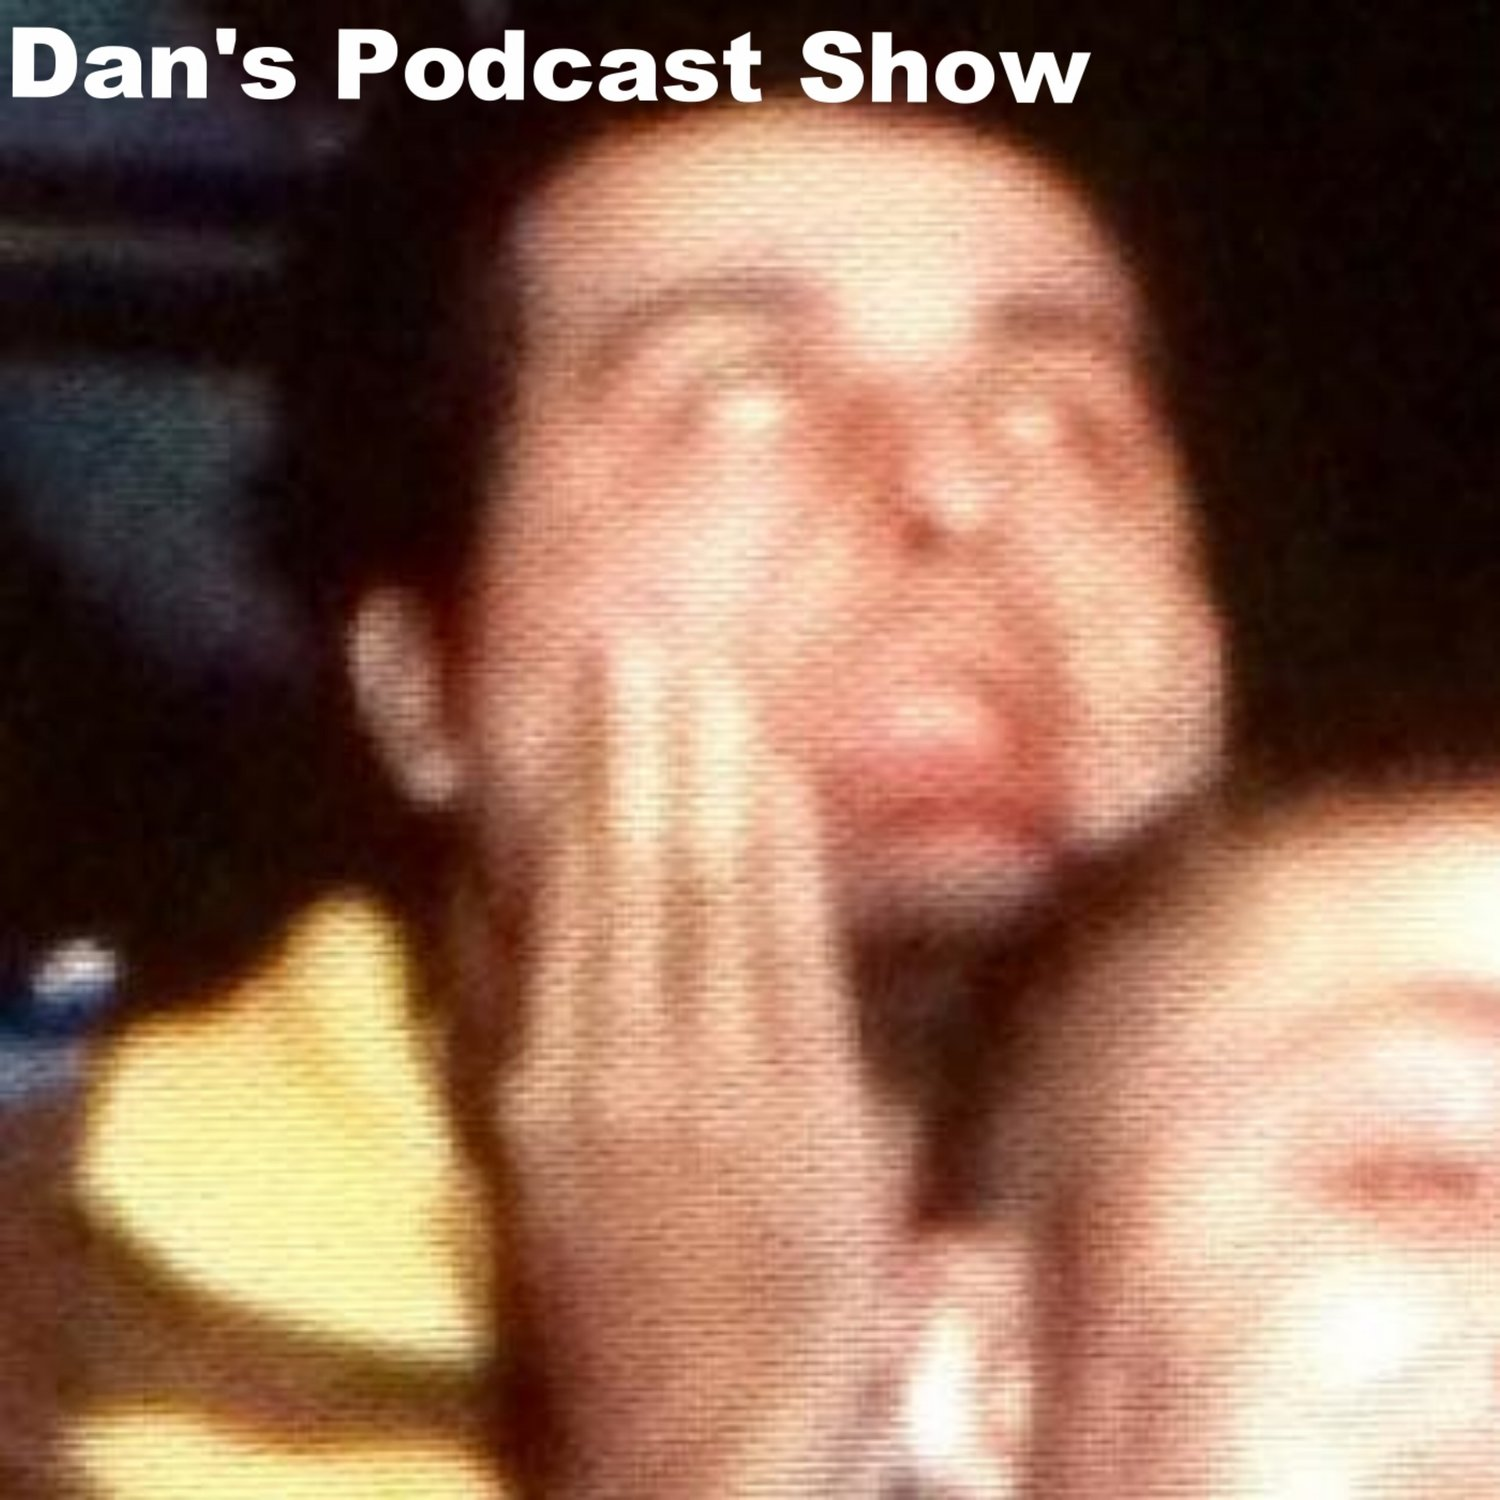 Dan's Podcast Show